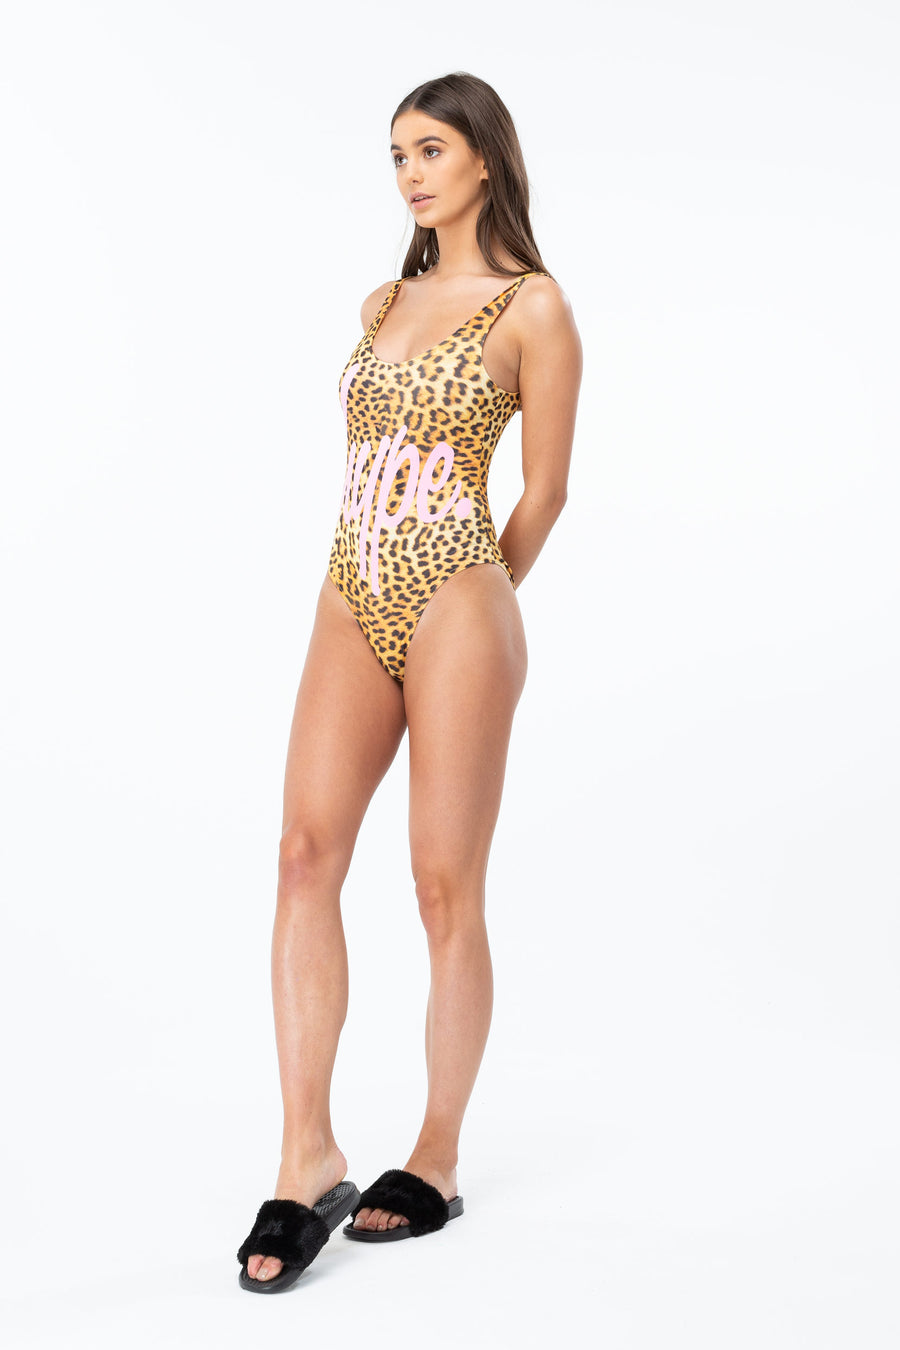 HYPE Women's Swimsuit Leopard Script